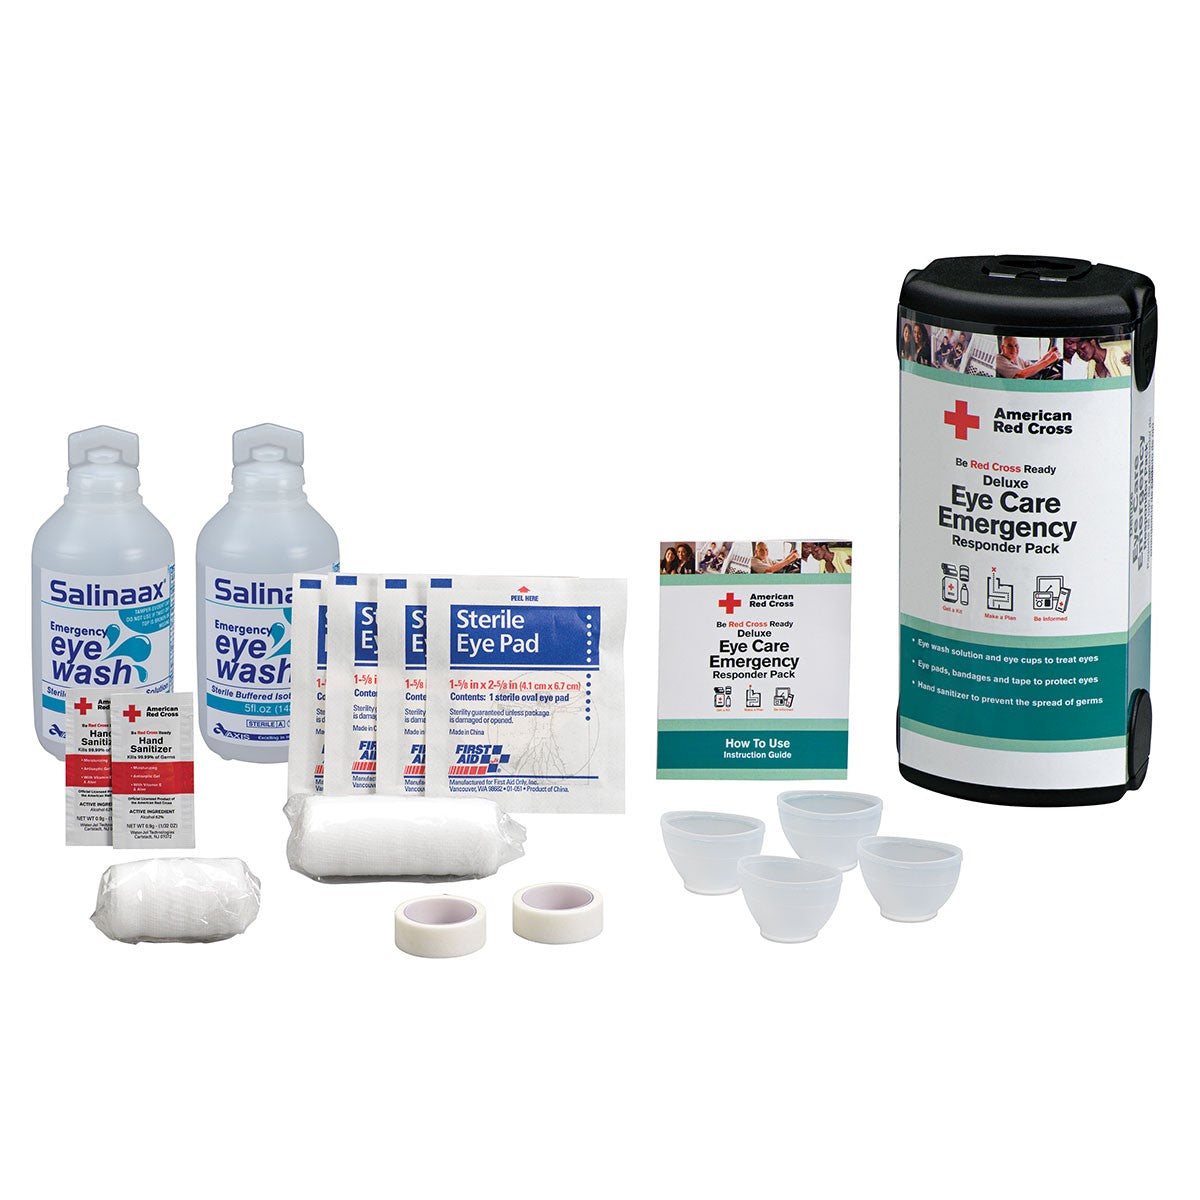 American Red Cross Deluxe Eye Care Emergency Responder Pack - BS-FAK-RC-684-1-FM